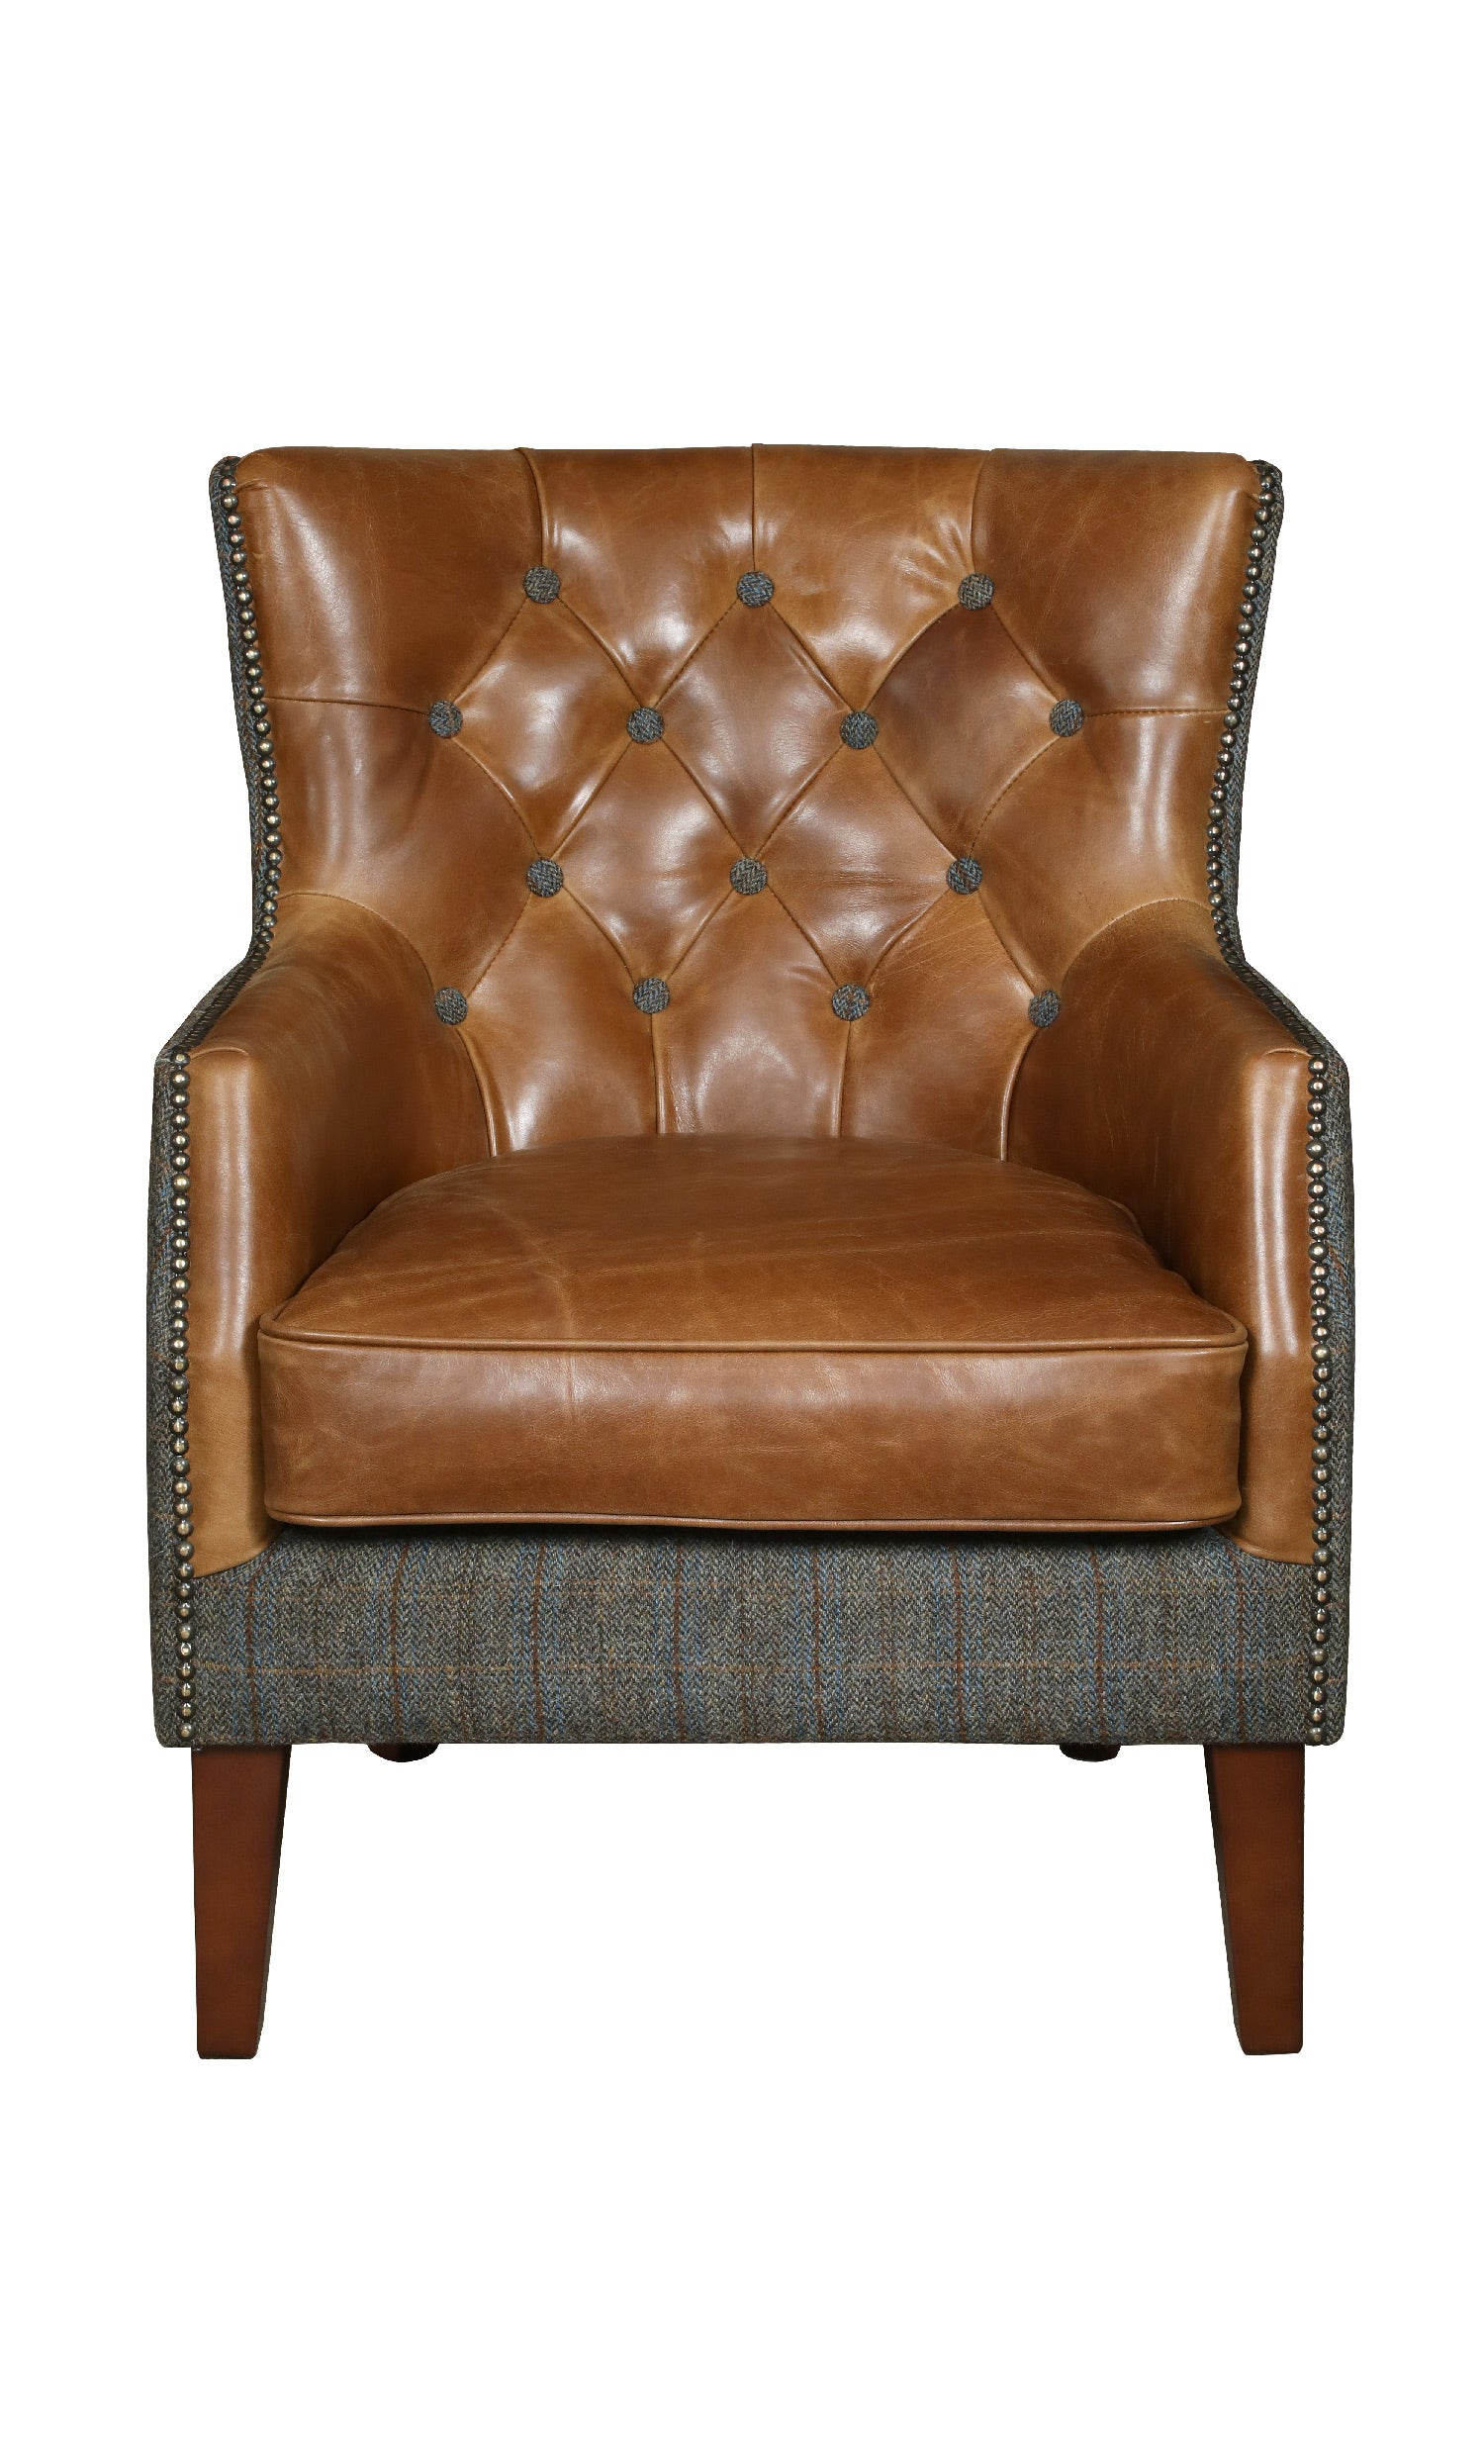 Stanford Harris Tweed and Leather Accent Chair.-harris tweed accent chairs-Against The Grain Furniture-Morland-Against The Grain Furniture